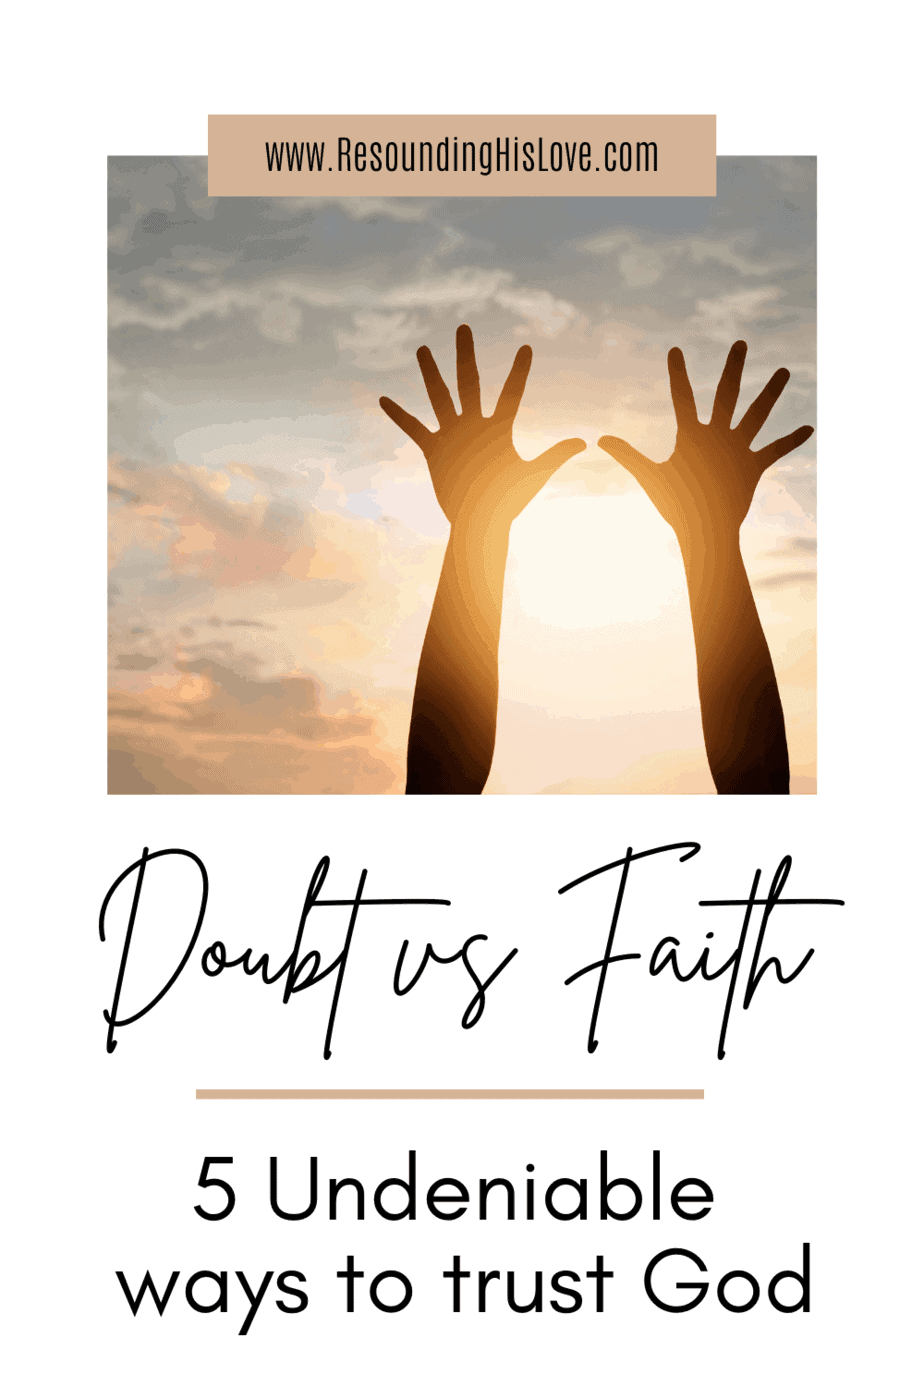 an image of a woman's hands stretching towards heaven in a golden sunset background with text doubt vs faith 5 Undeniable Ways to Trust God